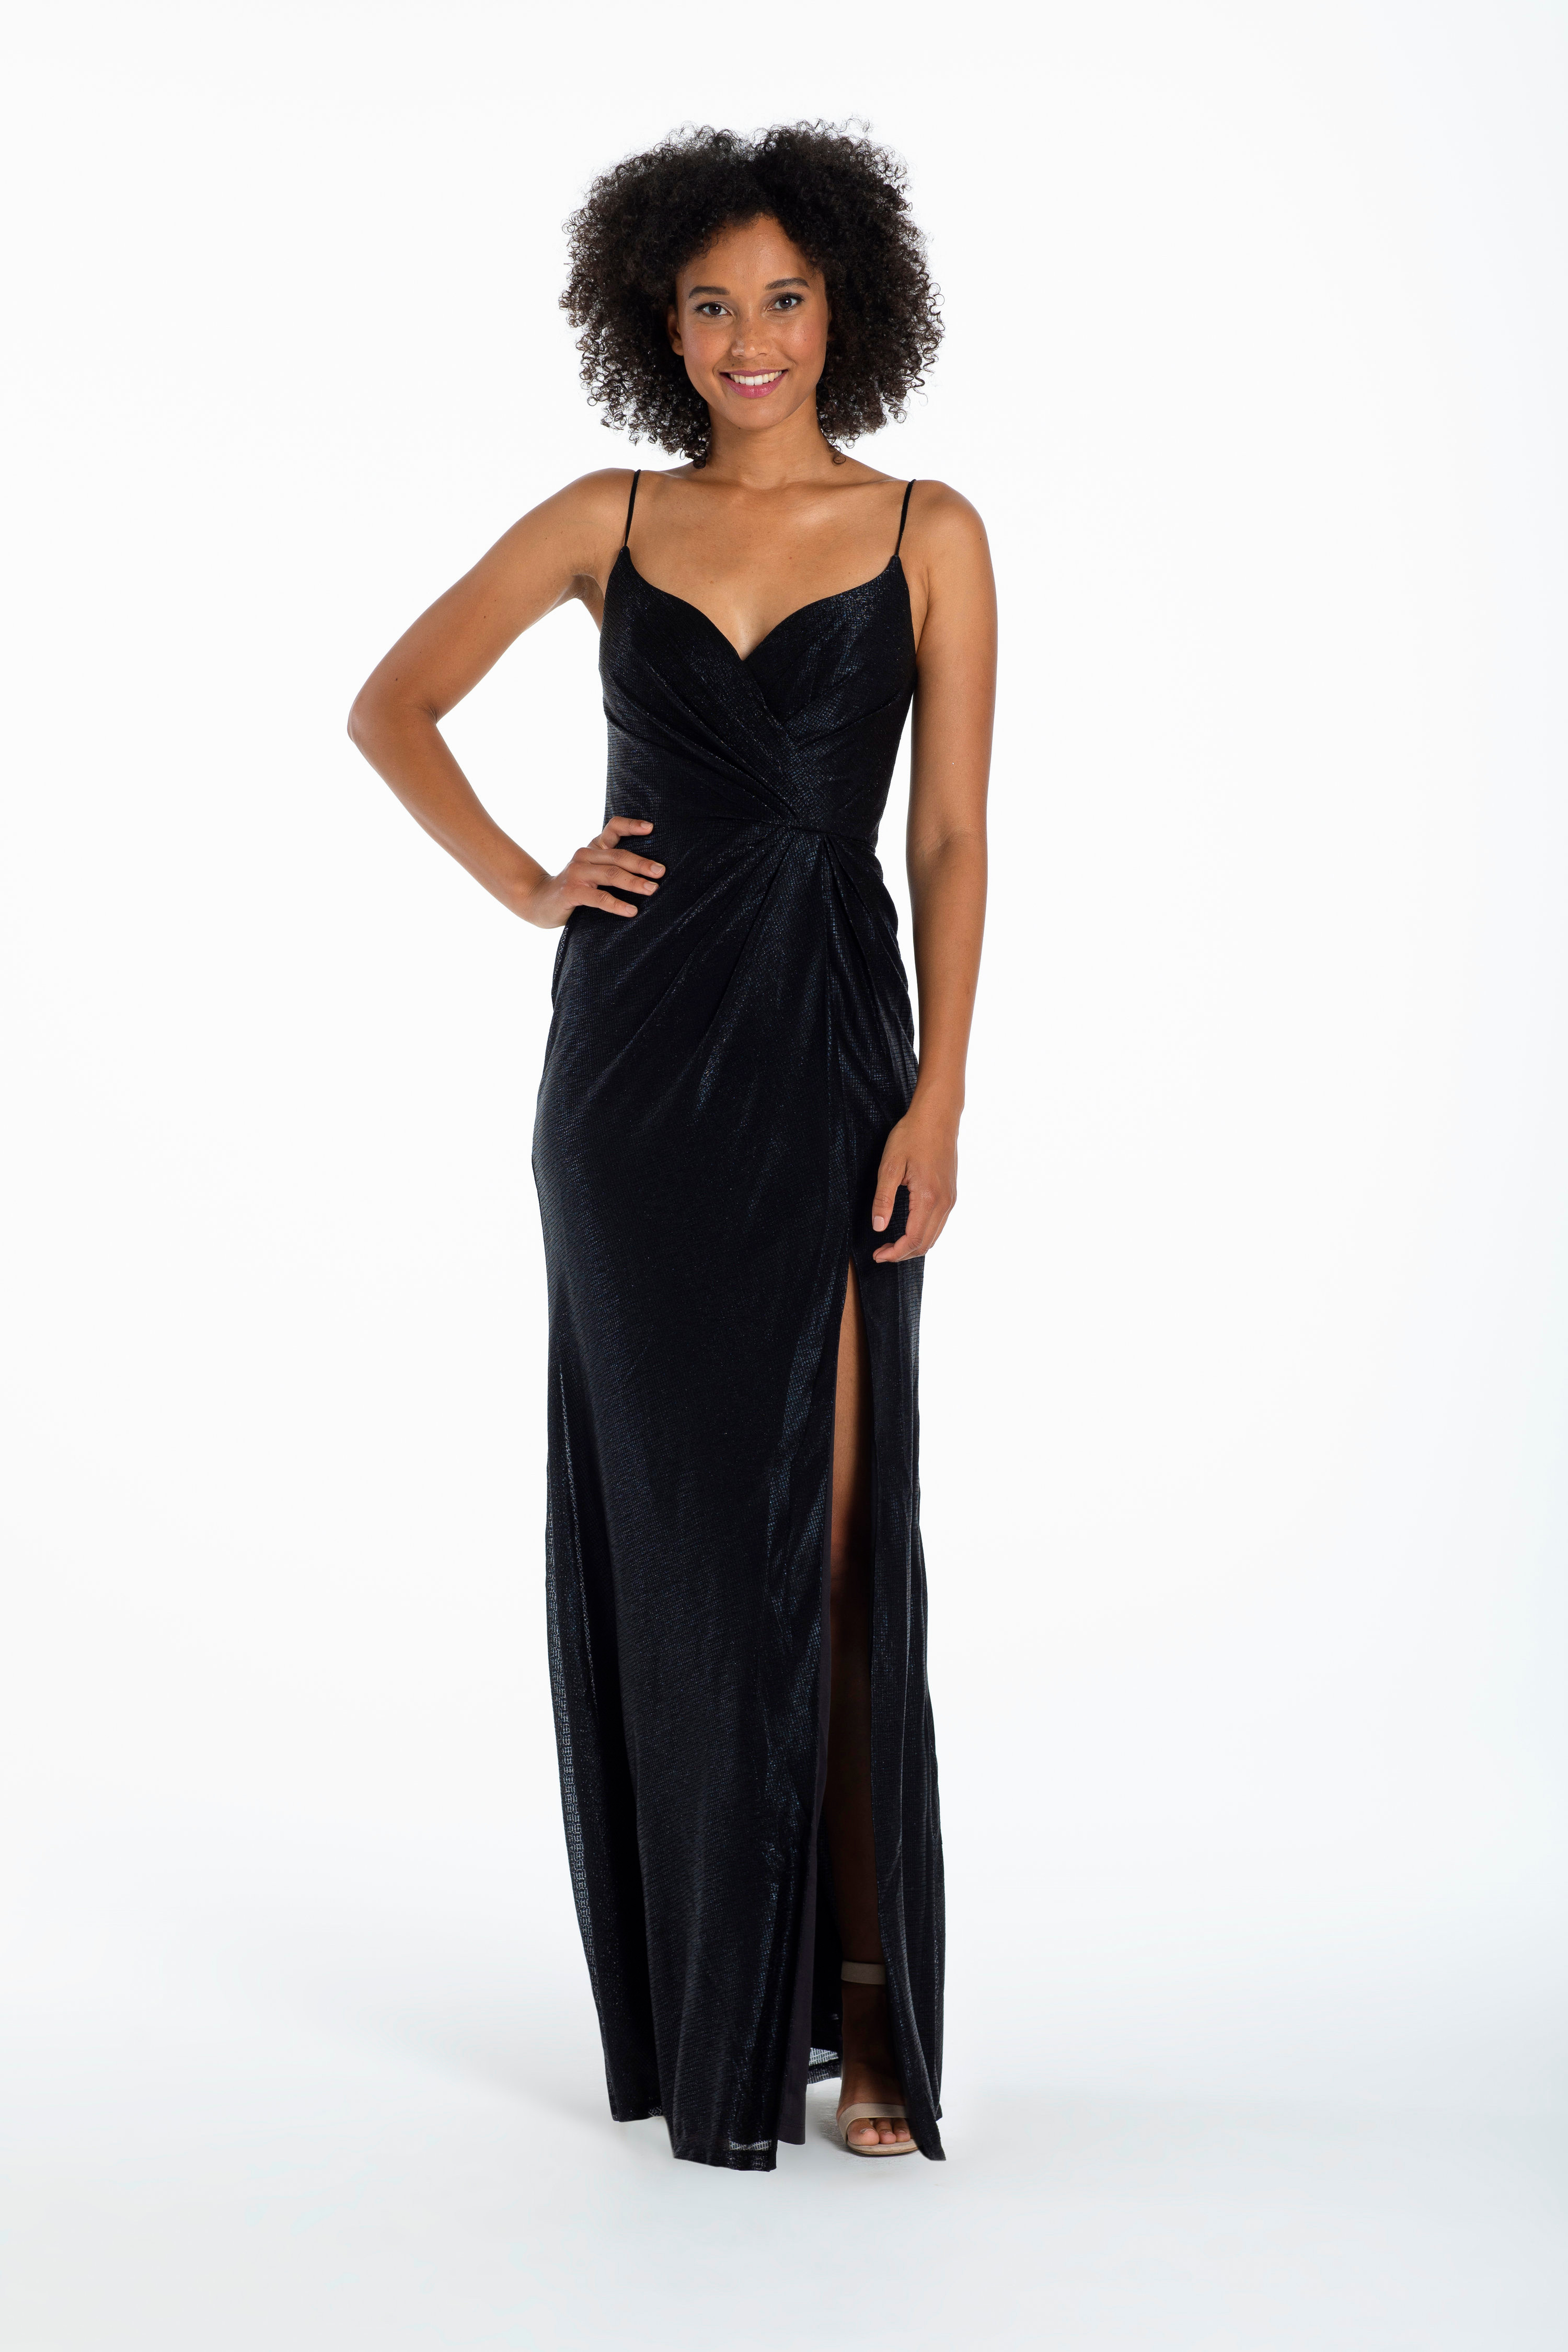 liquid metallic A-line gown, curved V-neckline, natural waist, gathered skirt with front slit.